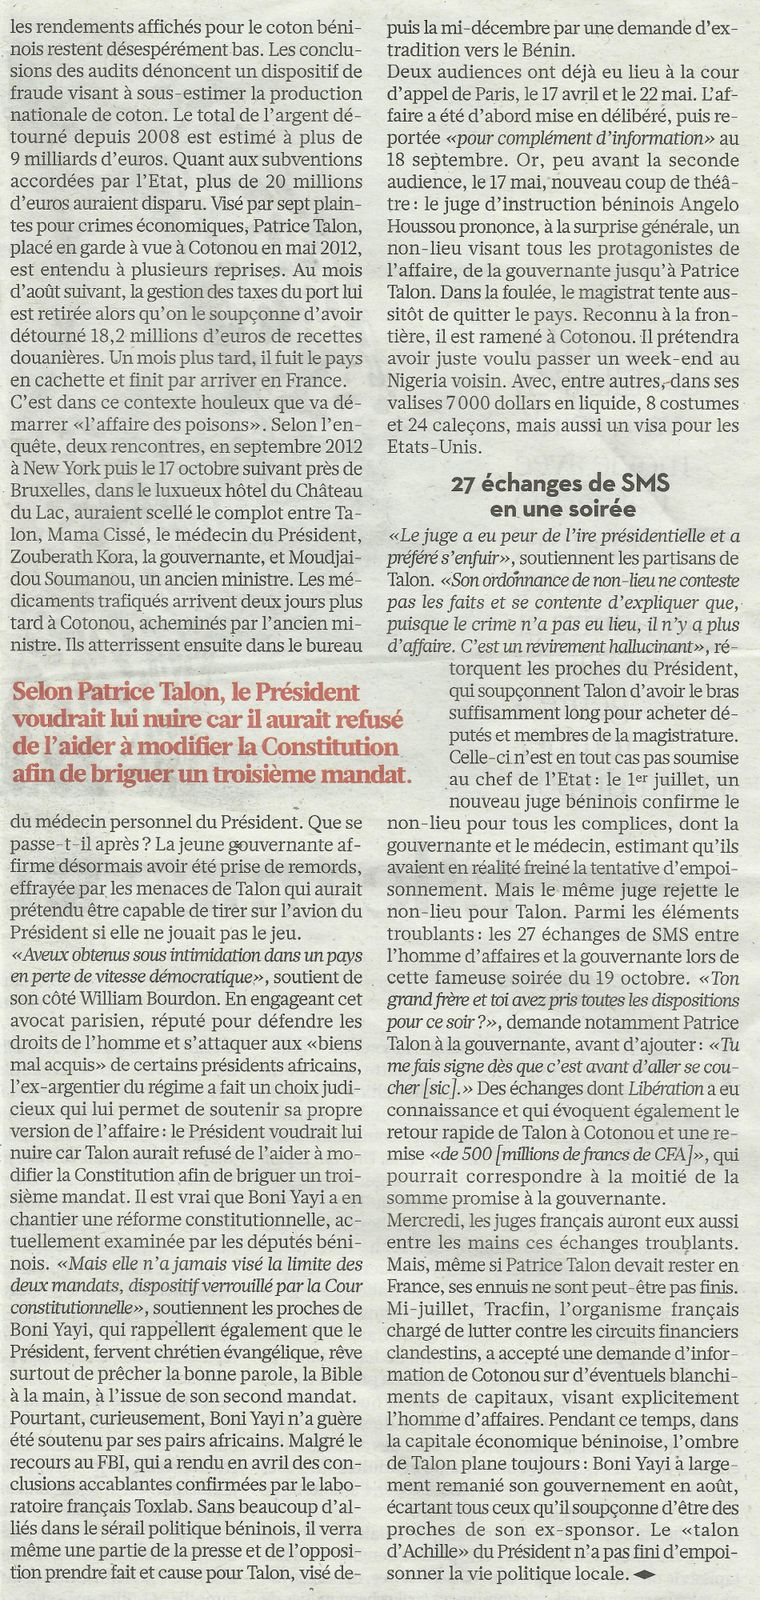 """ Bénin : Poison,coton et extorsion"" article de Maria MALAGARDIS, In ""LIBERATION"" parution du 17/09/2013"